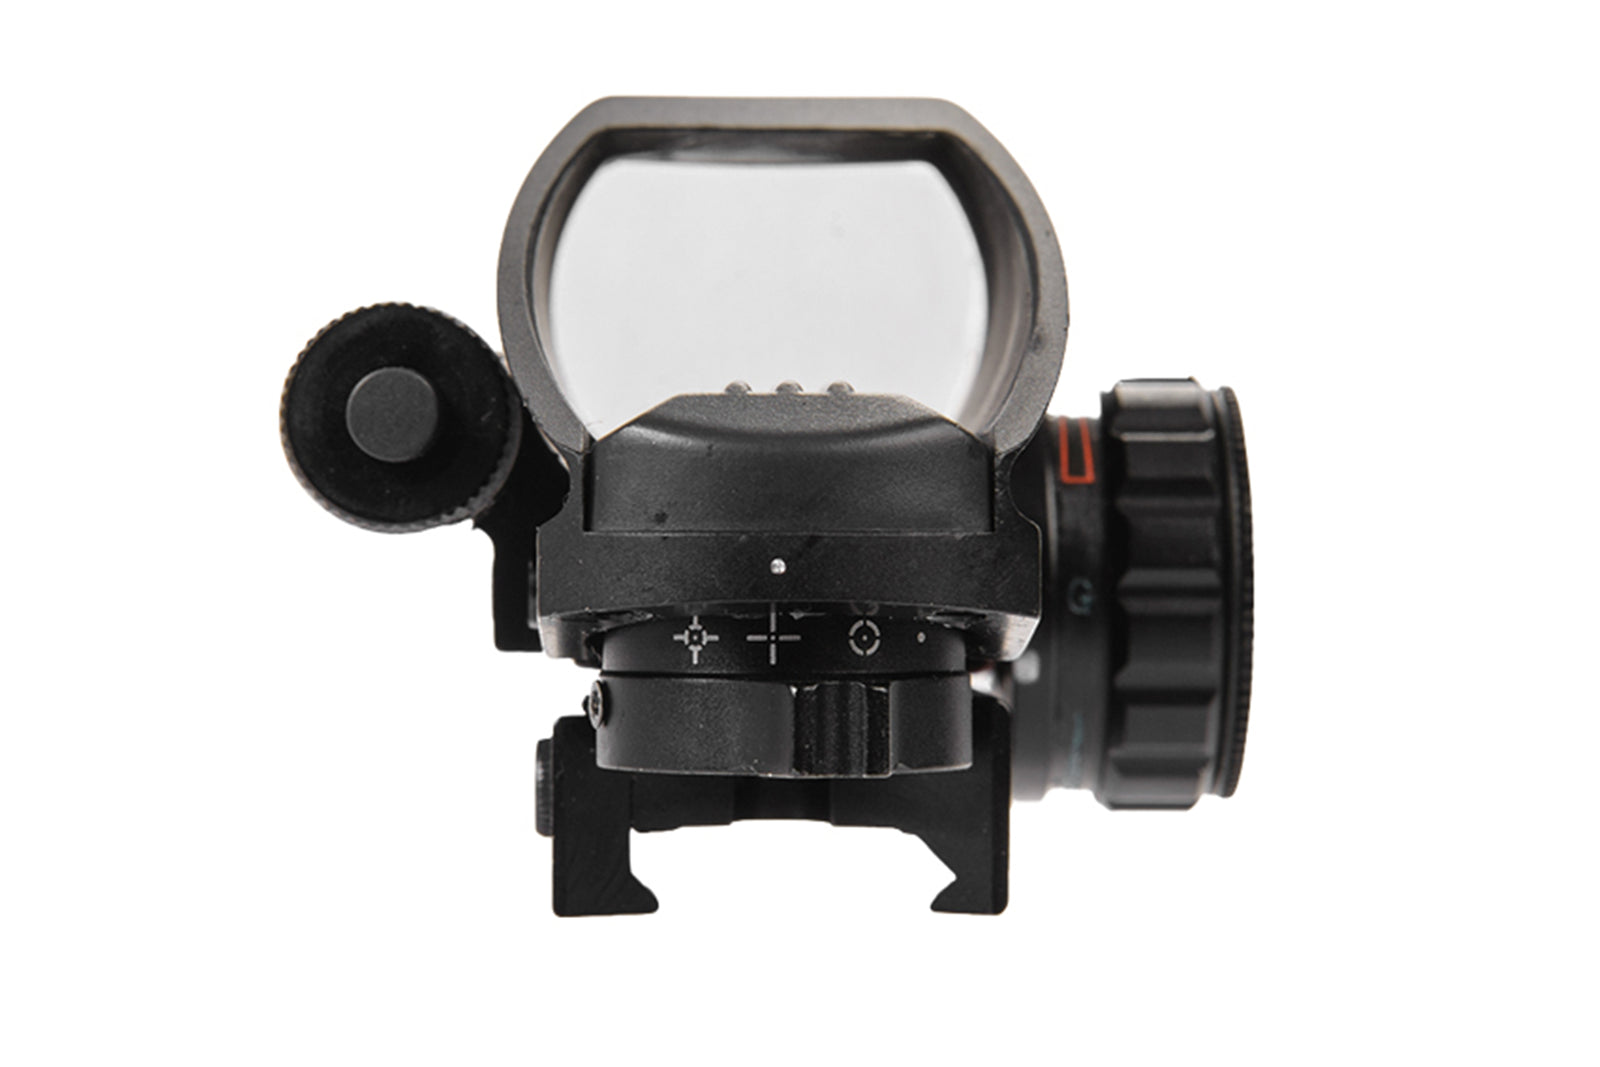 Lancer Tactical - 4 RETICLE REFLEX SIGHT W/ LASER